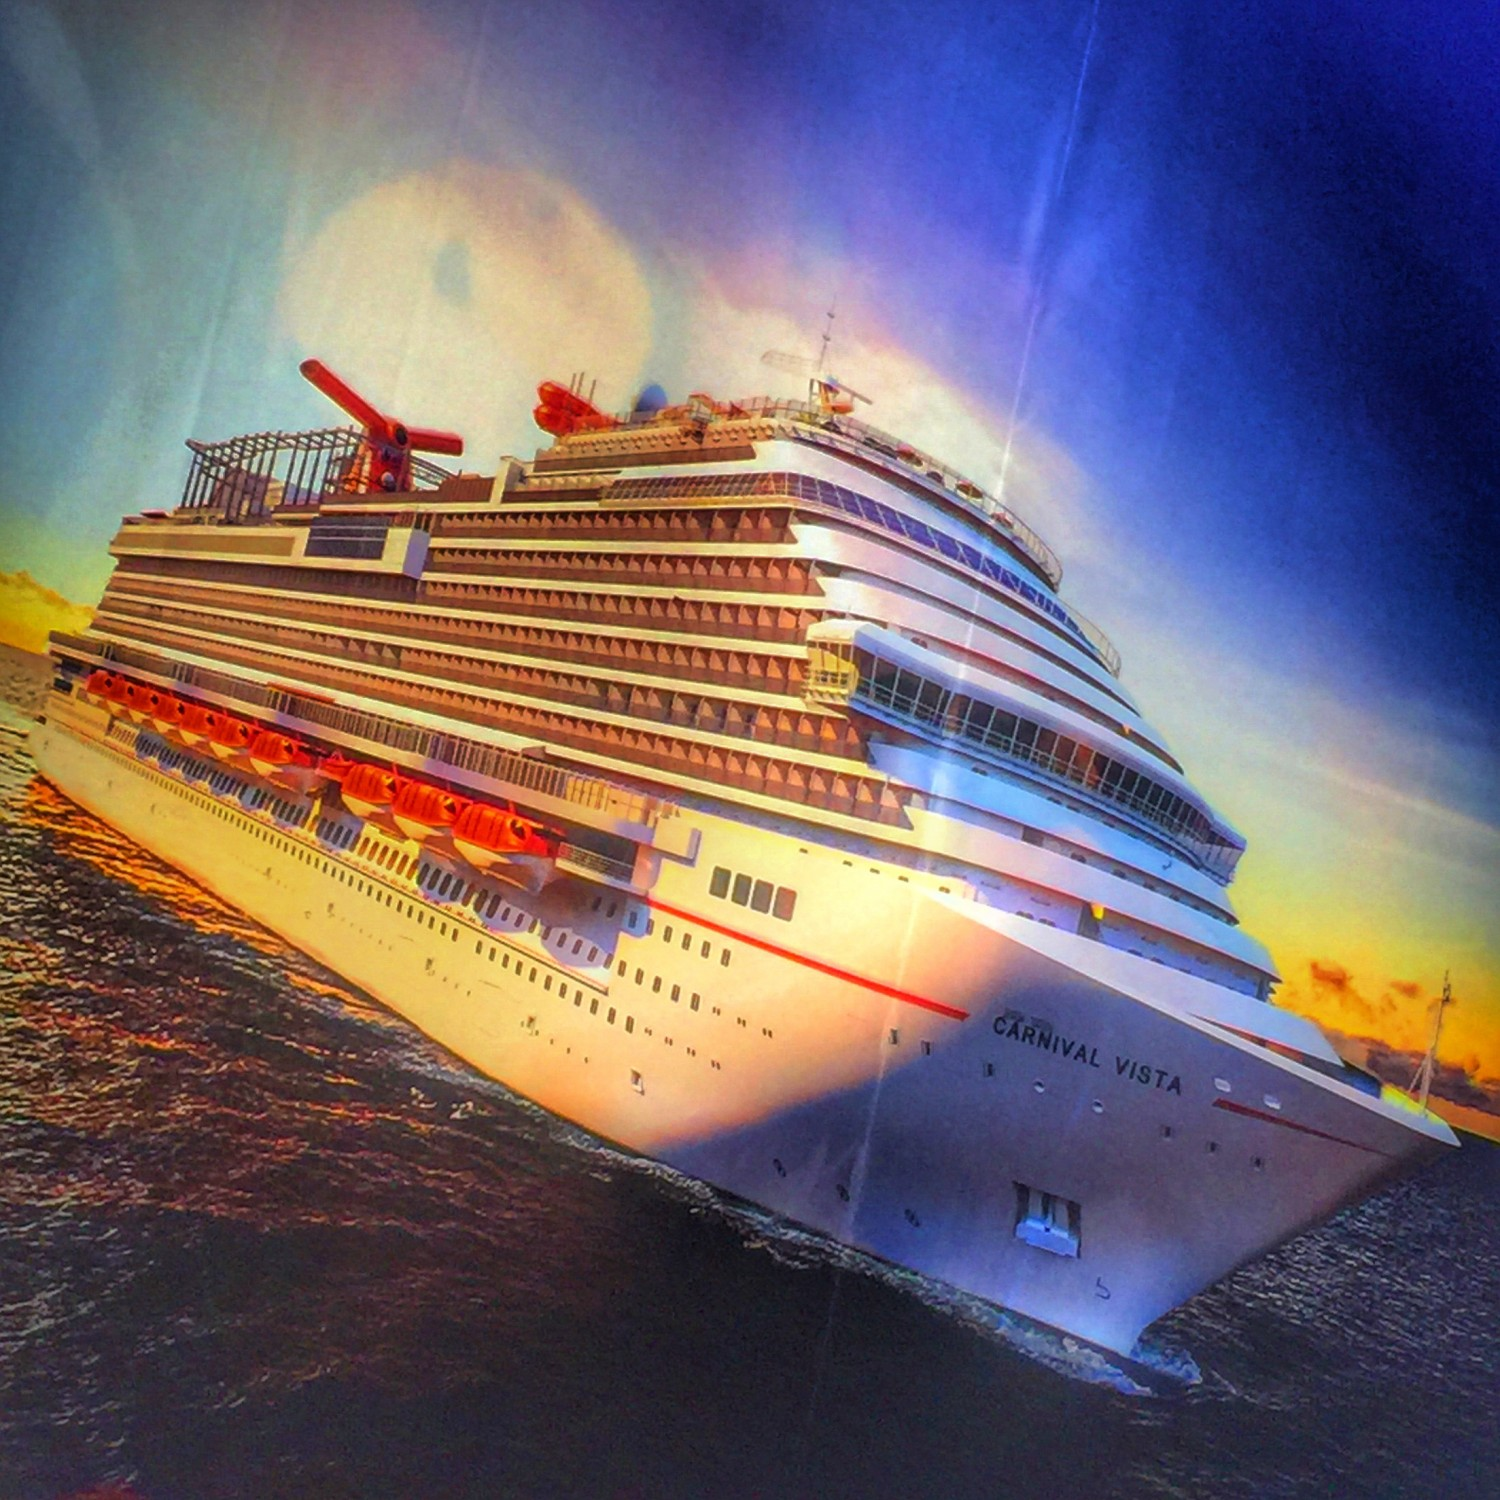 a trip to the carnival The second of the vista-class vessels, which follows the carnival vista, is currently under construction at fincantieri's shipyard in marghera, italy.